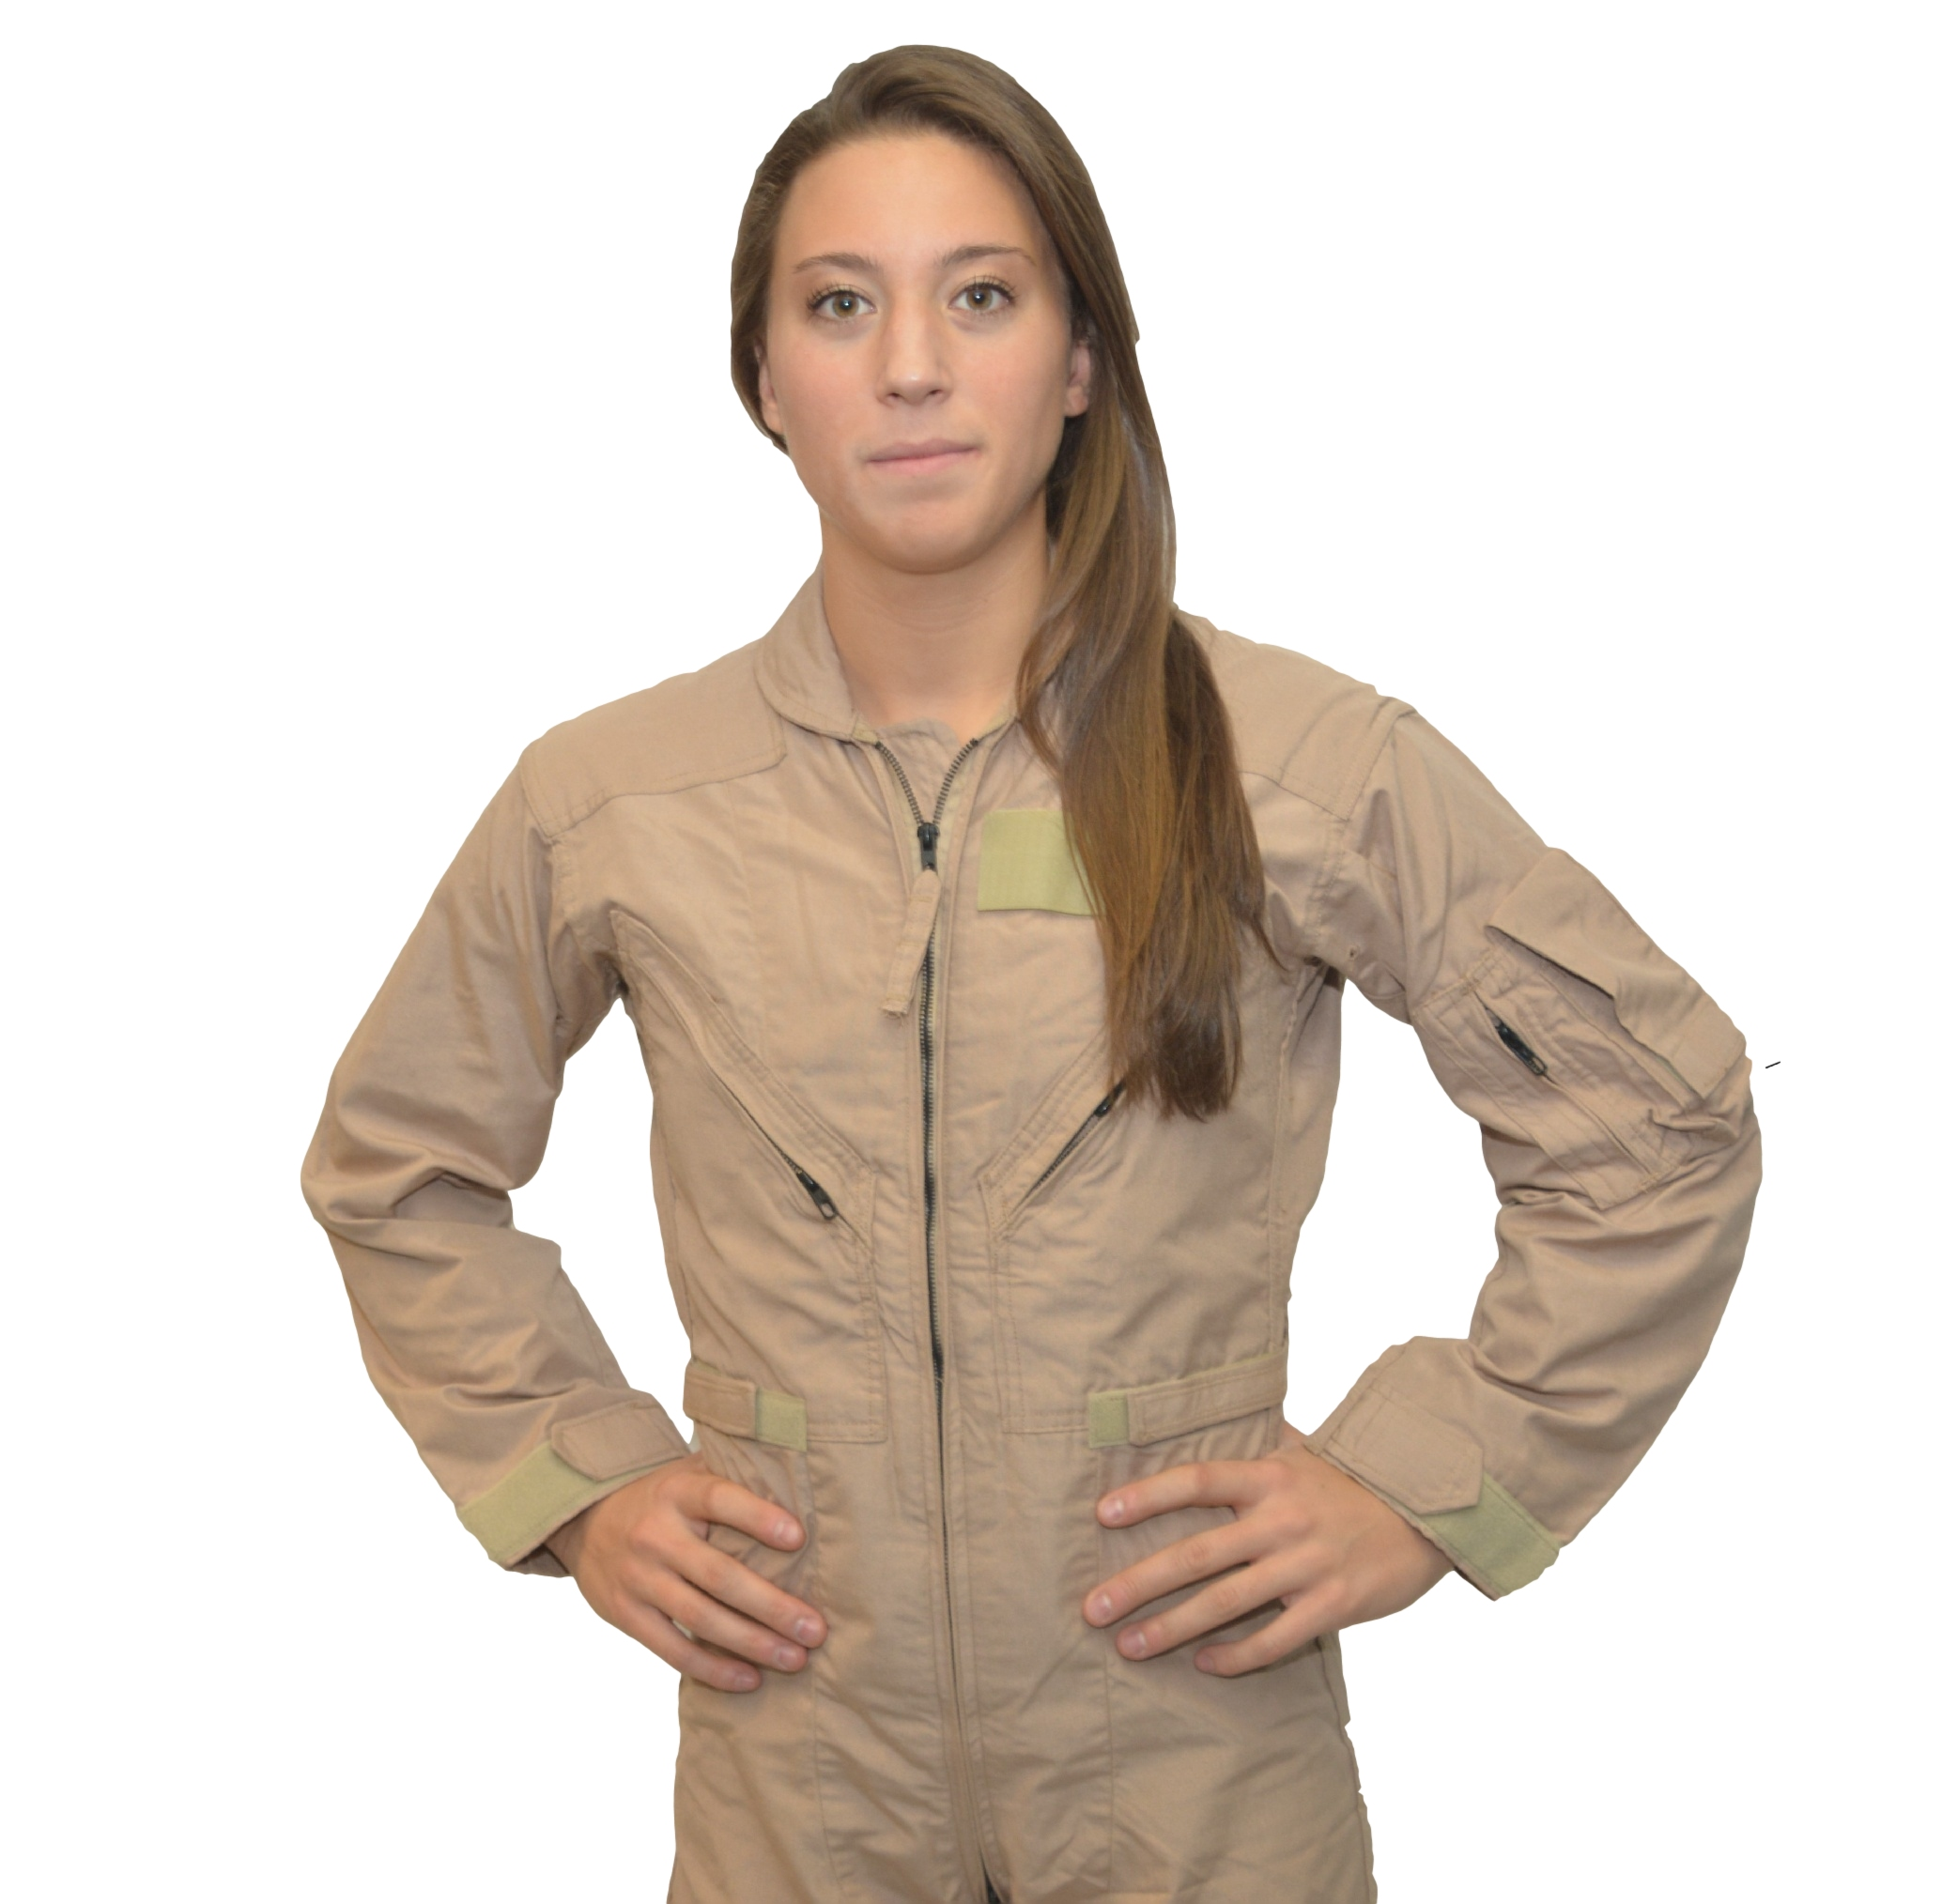 CWU 27 P Nomex Flight Suit for Women ... 844938108